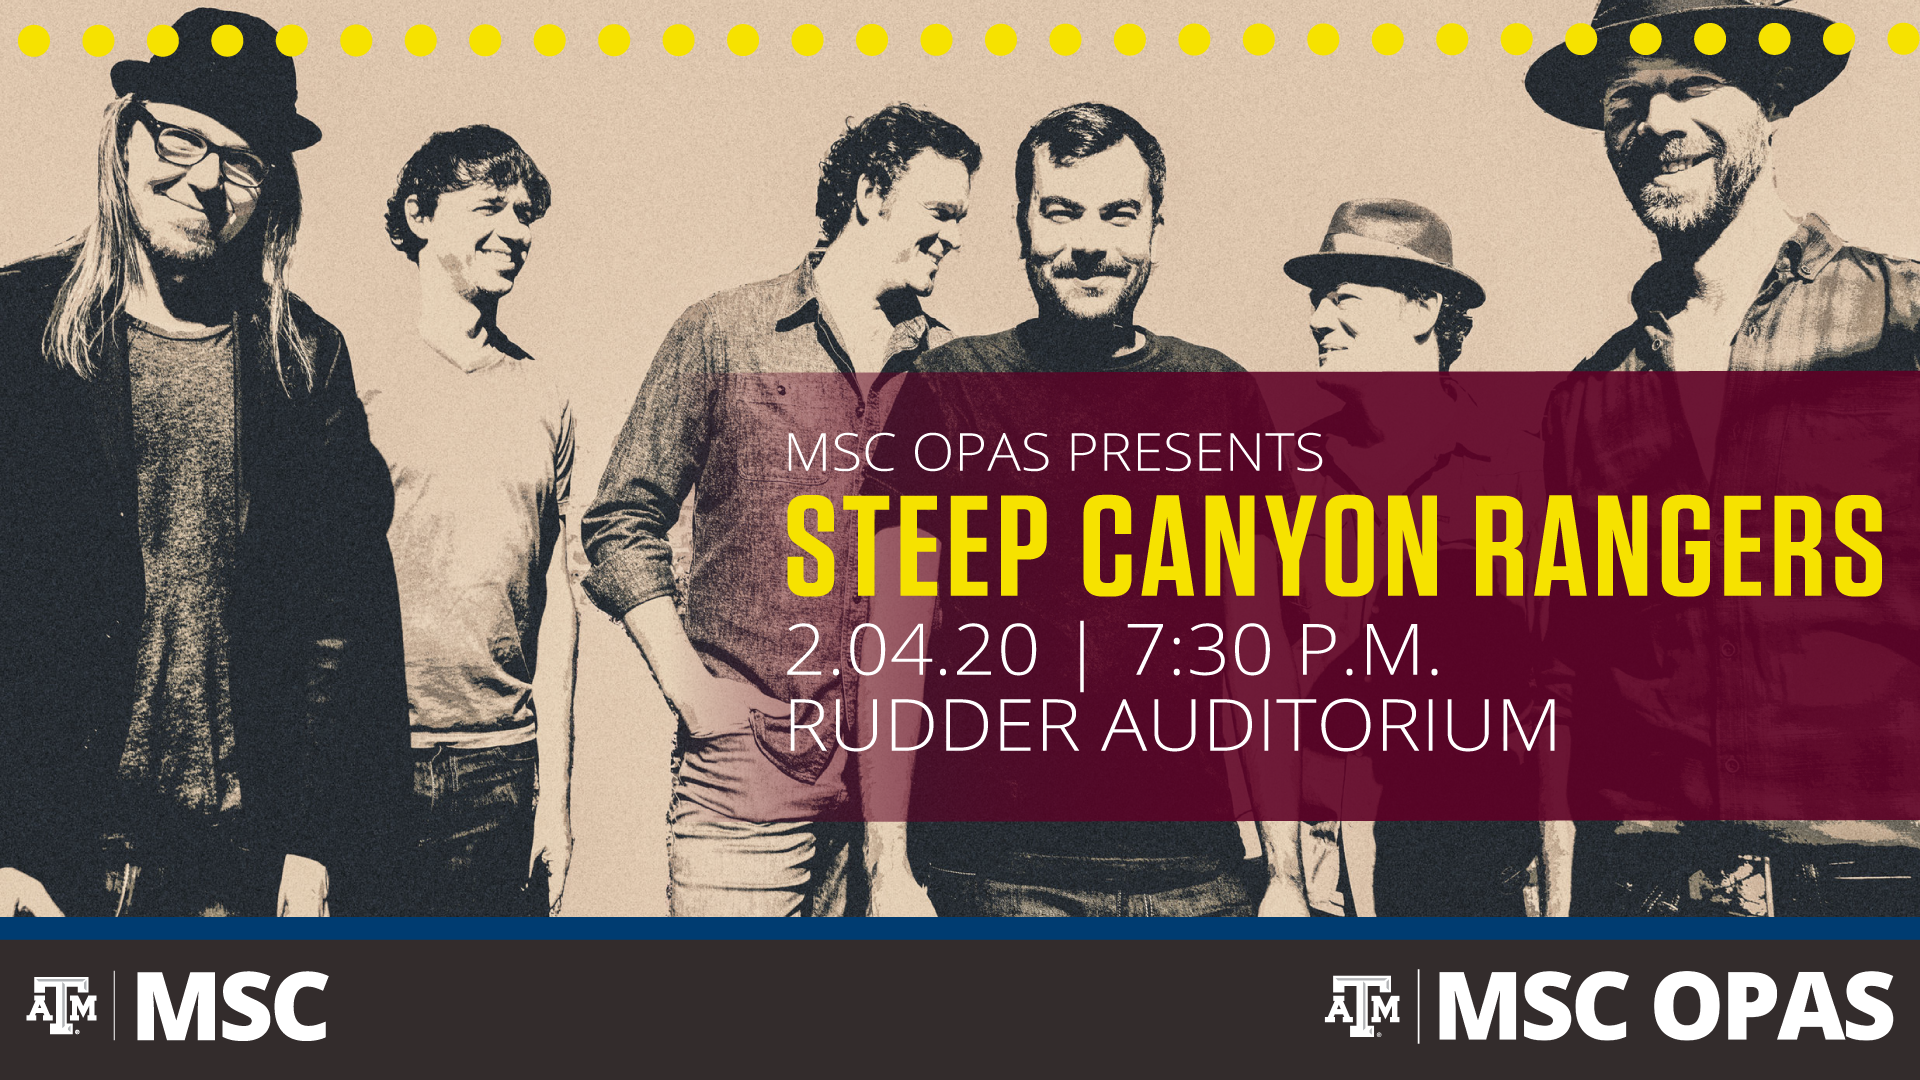 MSC OPAS presents Steep Canyon Rangers on February 2, 2020 at 7:30 p.m. in Rudder Auditorium.